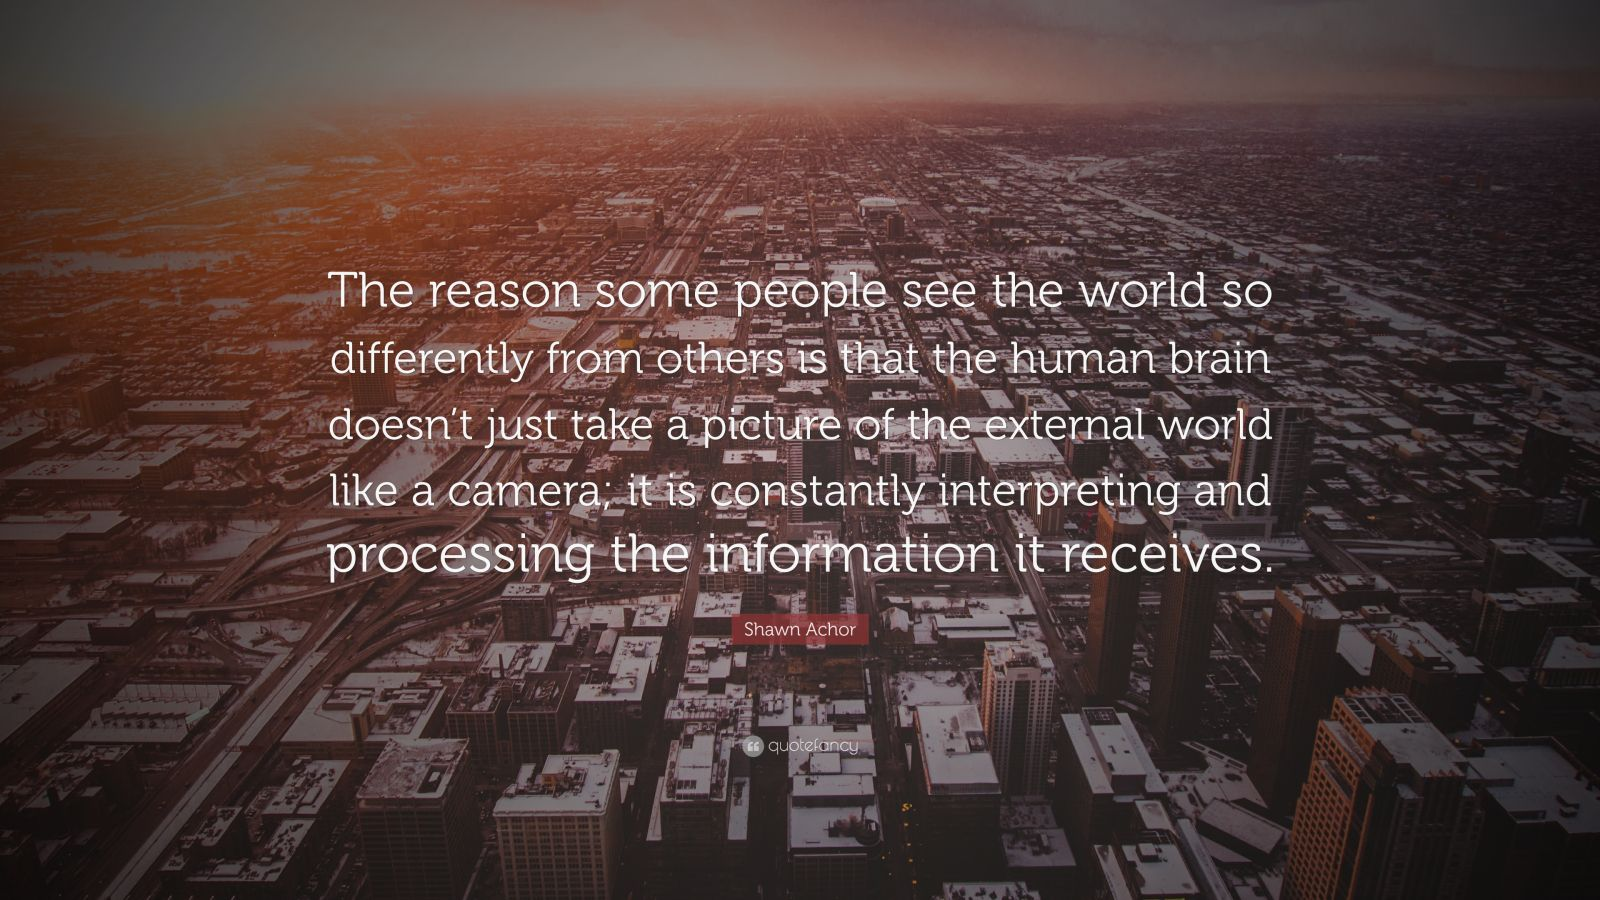 """Shawn Achor Quote: """"The reason some people see the world so differently from others is that the human brain doesn't just take a picture of the external world like a camera; it is constantly interpreting and processing the information it receives."""""""